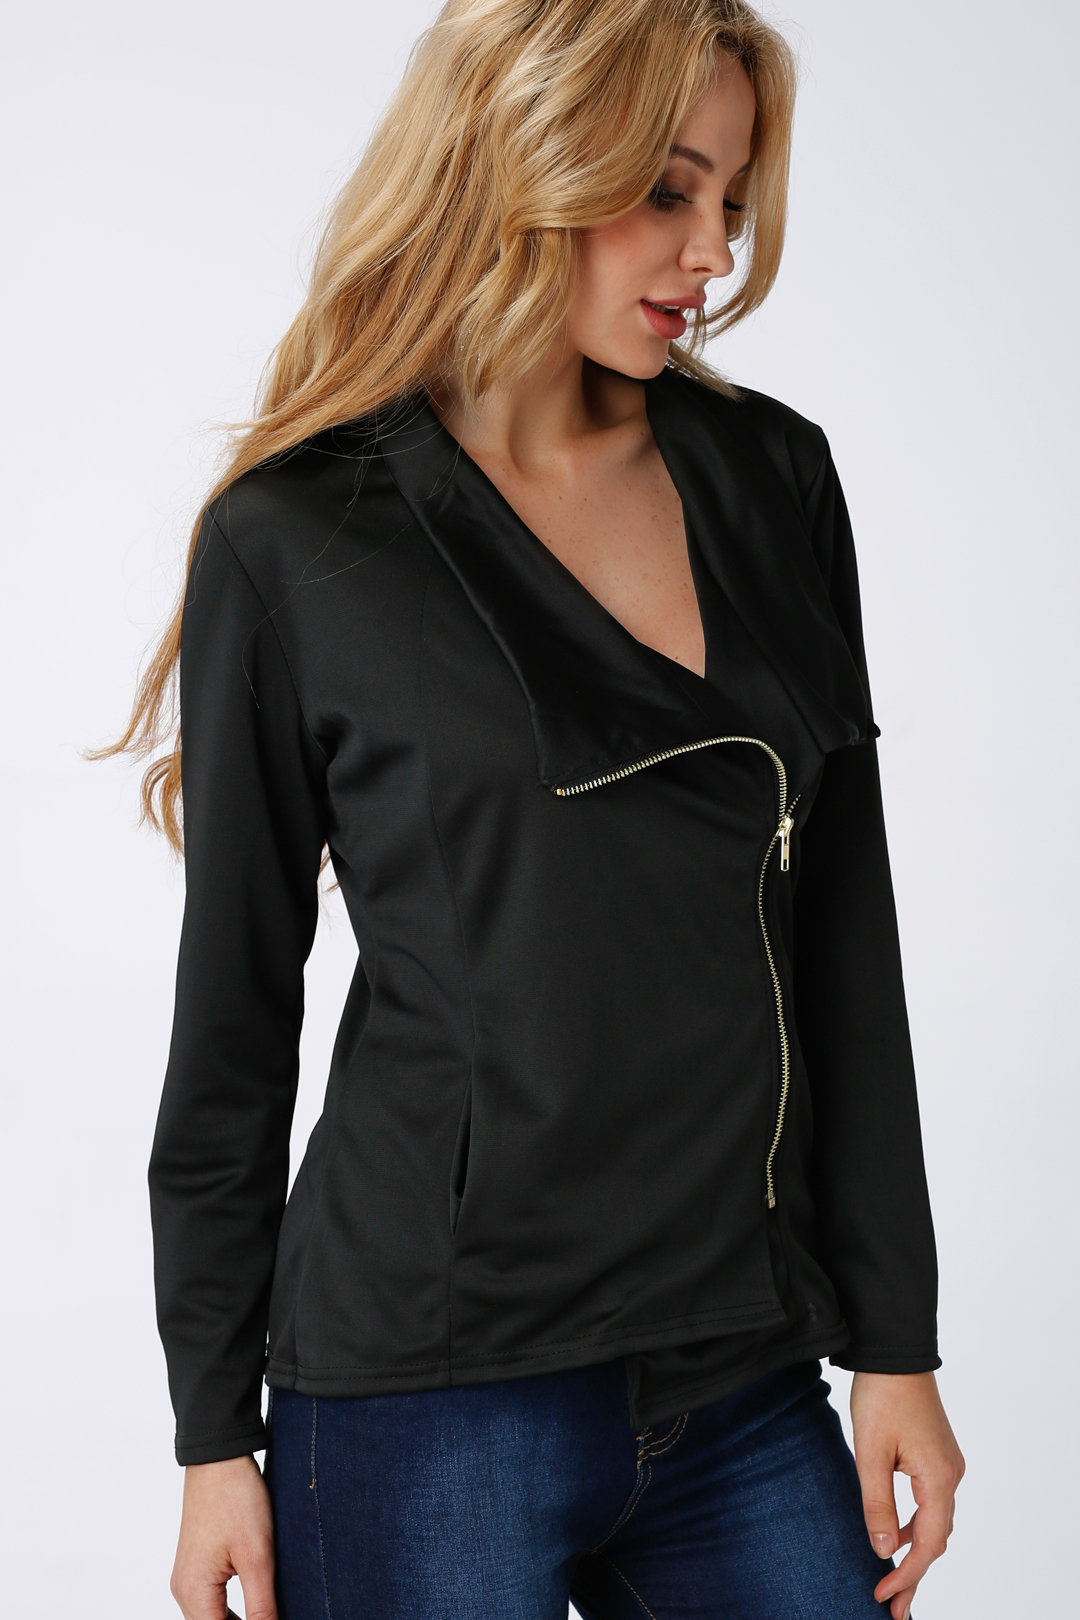 Black light-weight zipper biker jacket with side pockets...